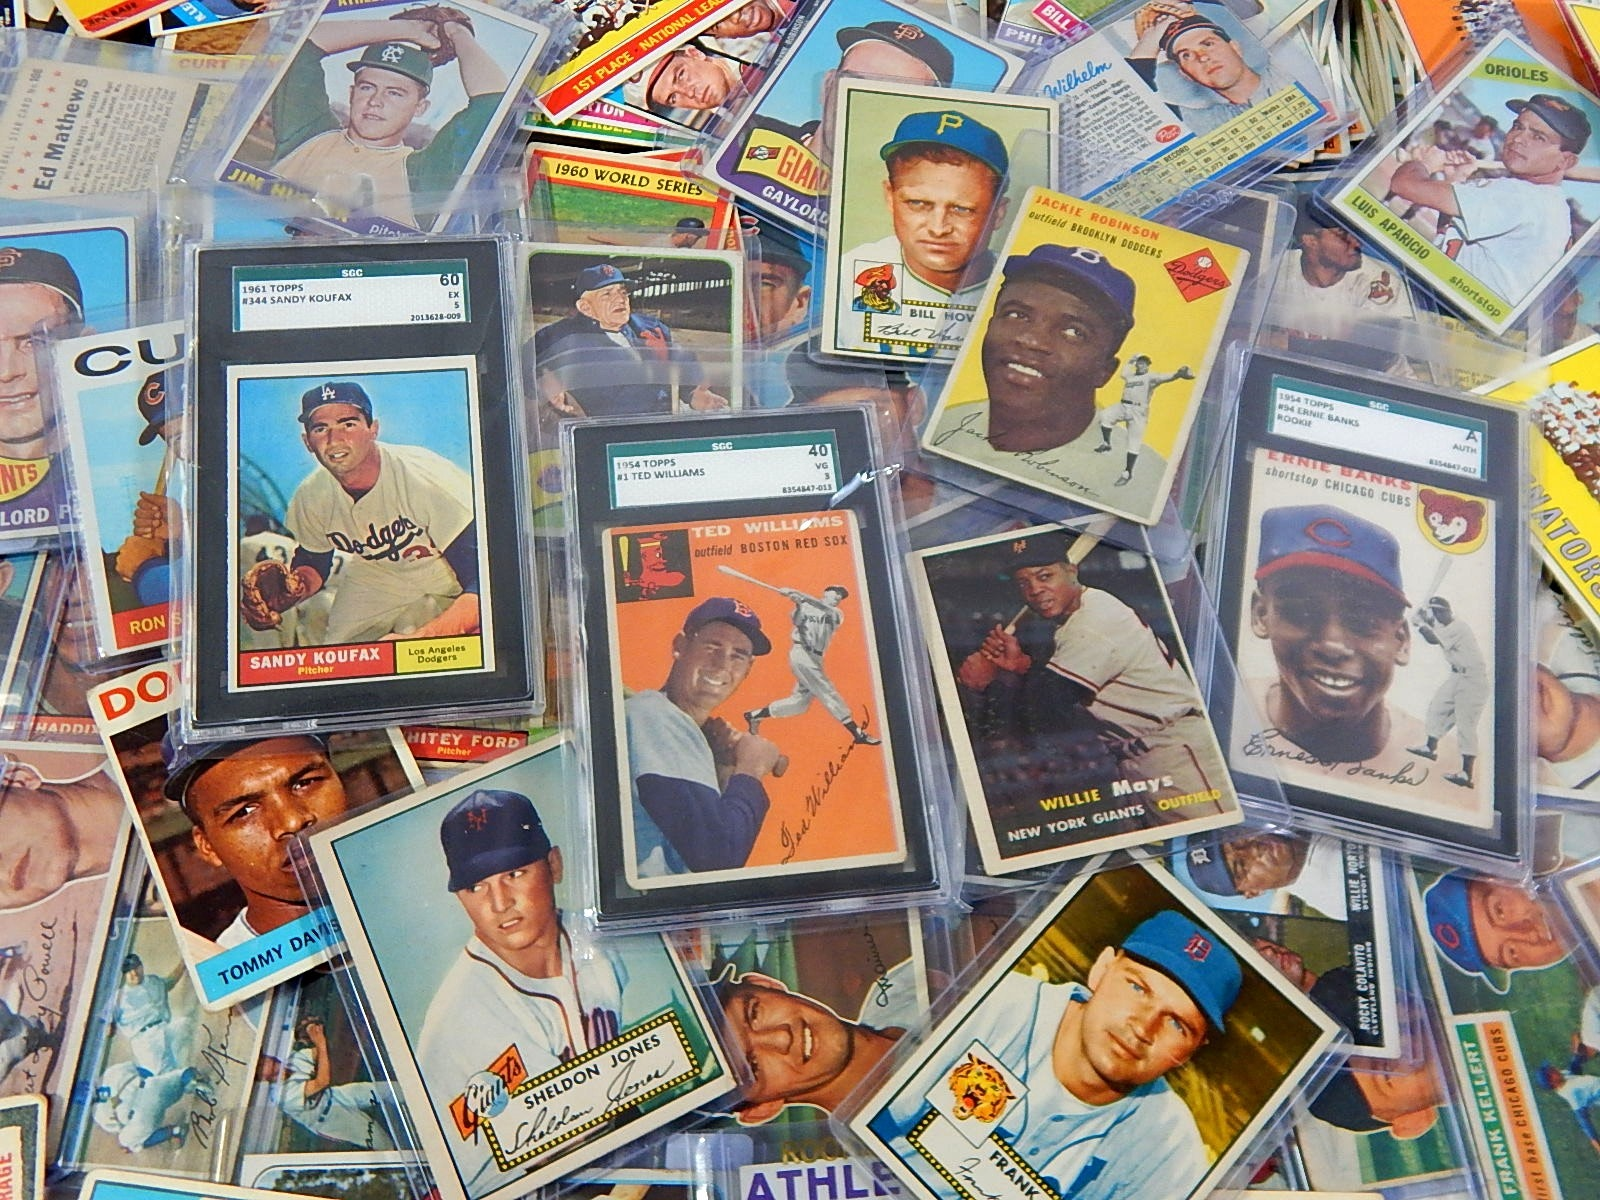 Over 300 Topps Baseball Cards from 1952 to 1966-Mantle, Banks RC, Mays, Williams